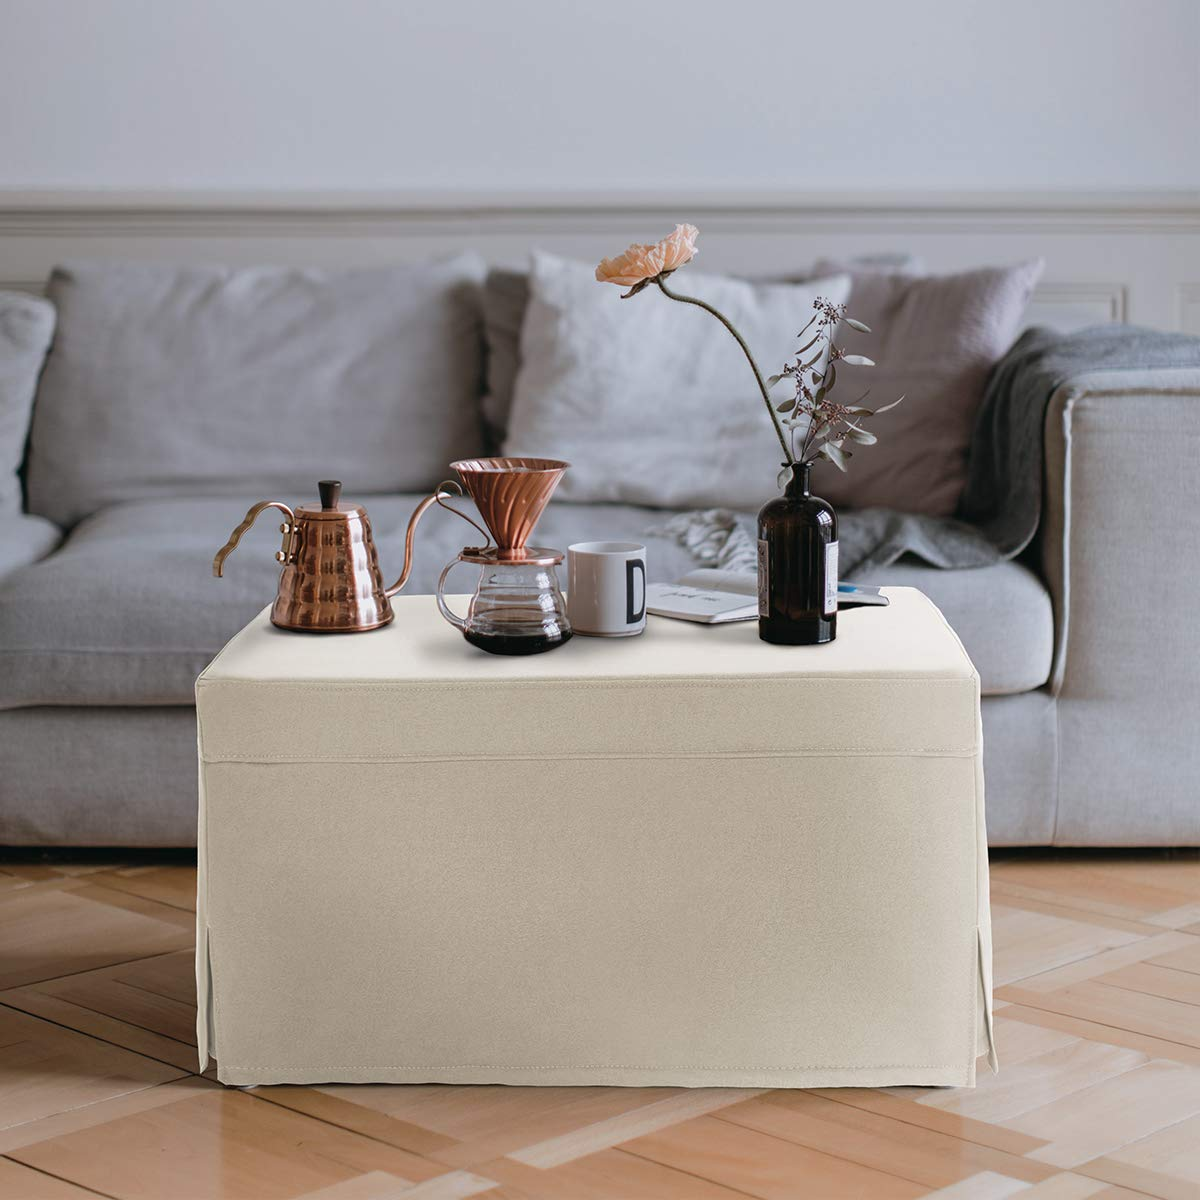 NOVA FURNITURE Ottoman Sleeper Guest Bed, fold-Out Bed 3rd Generation with Technology Cloth Updates, Breathable Leather Micro Fabric, Square Ottoman Coffee Table, Super Easy to Clean, Beige